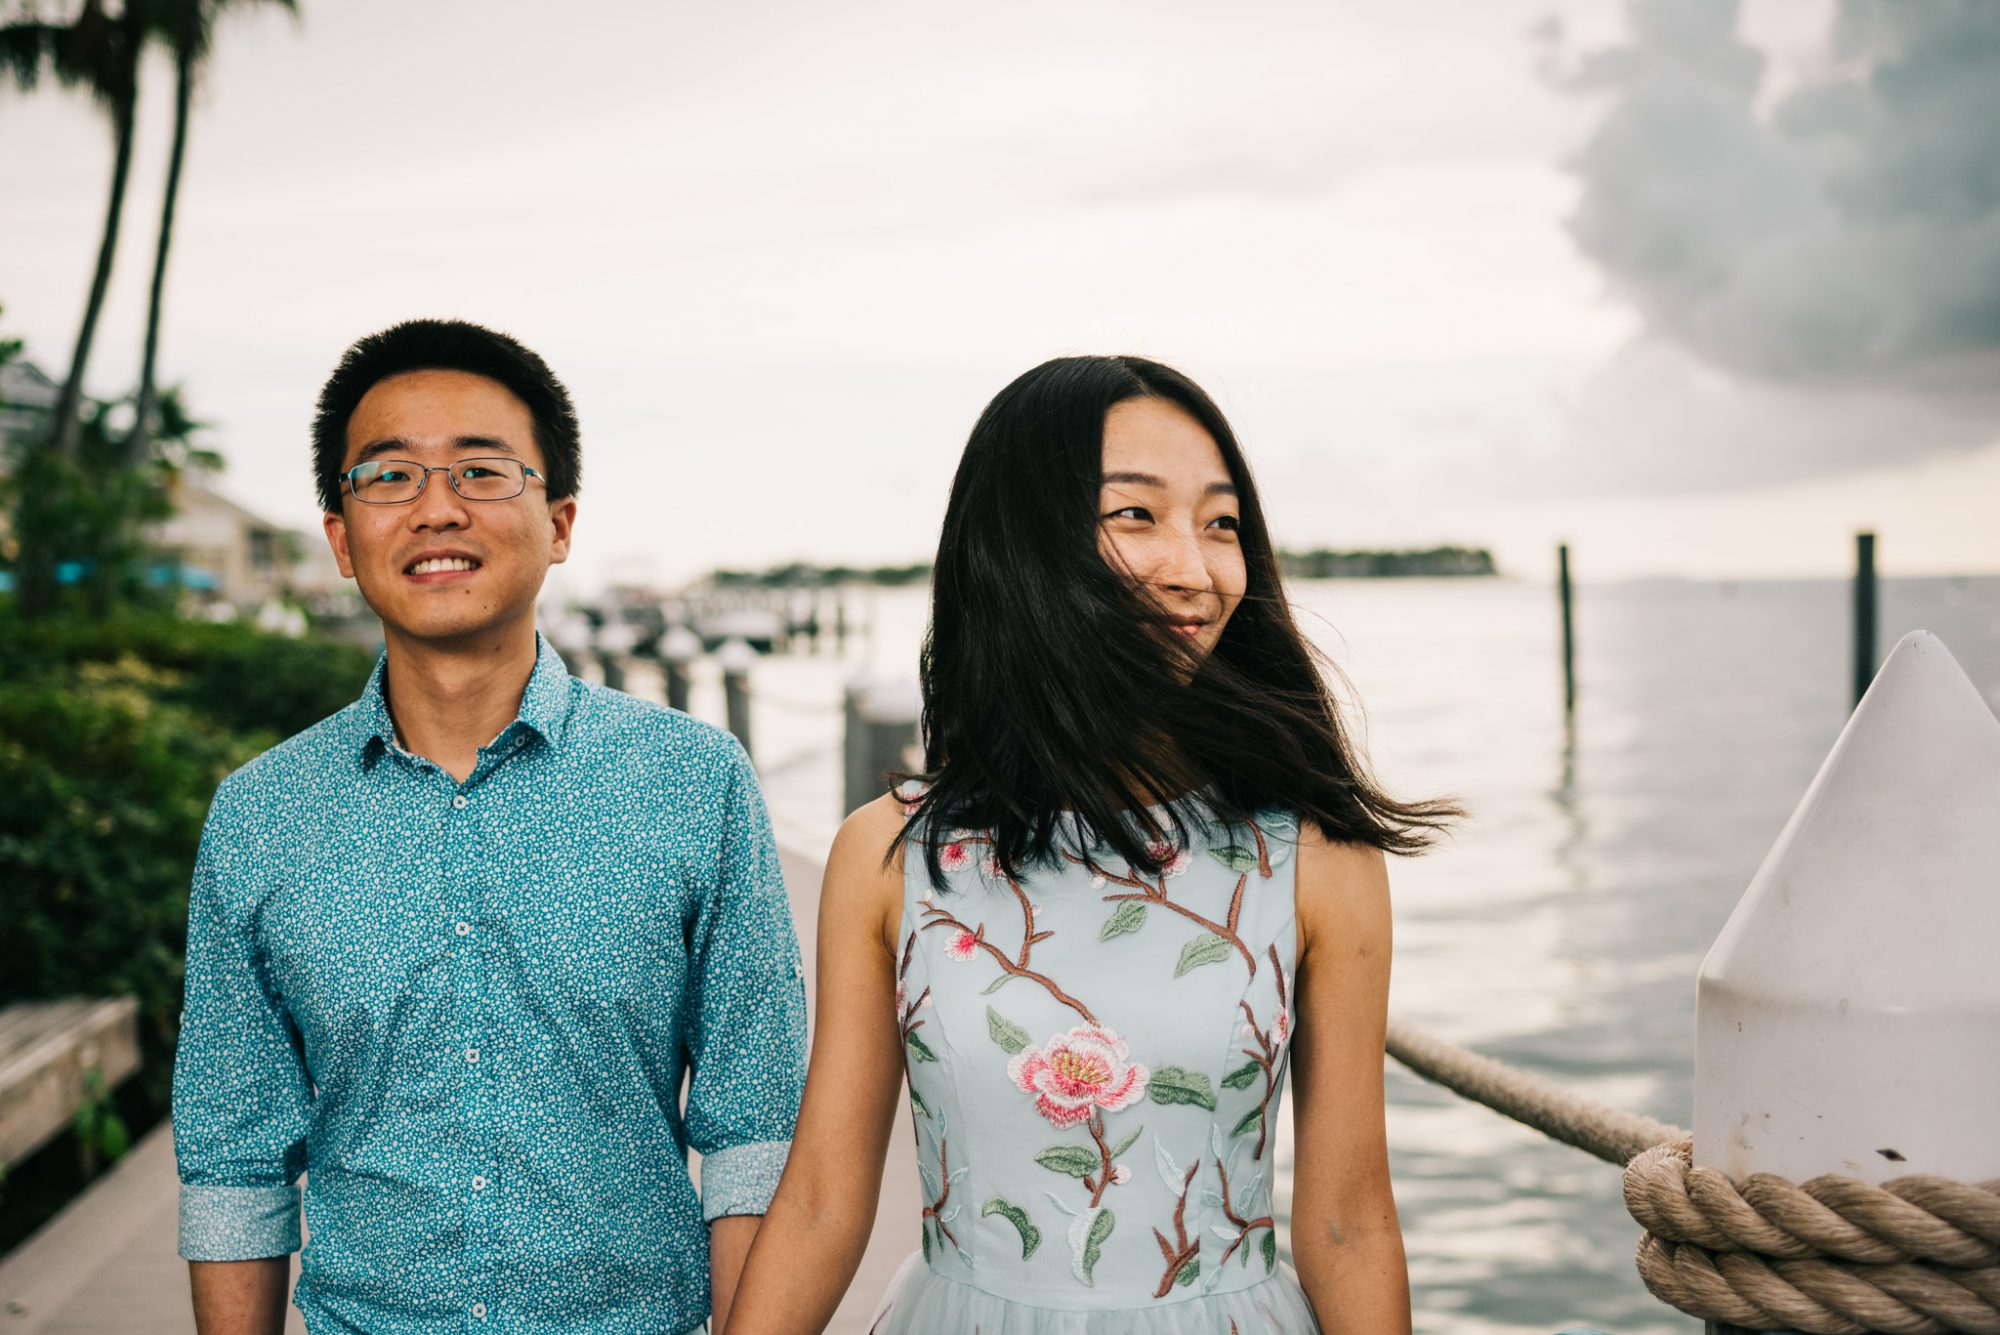 FBF1466 - Xiao & Ying | Key West, FL | Engagement Sunset Session